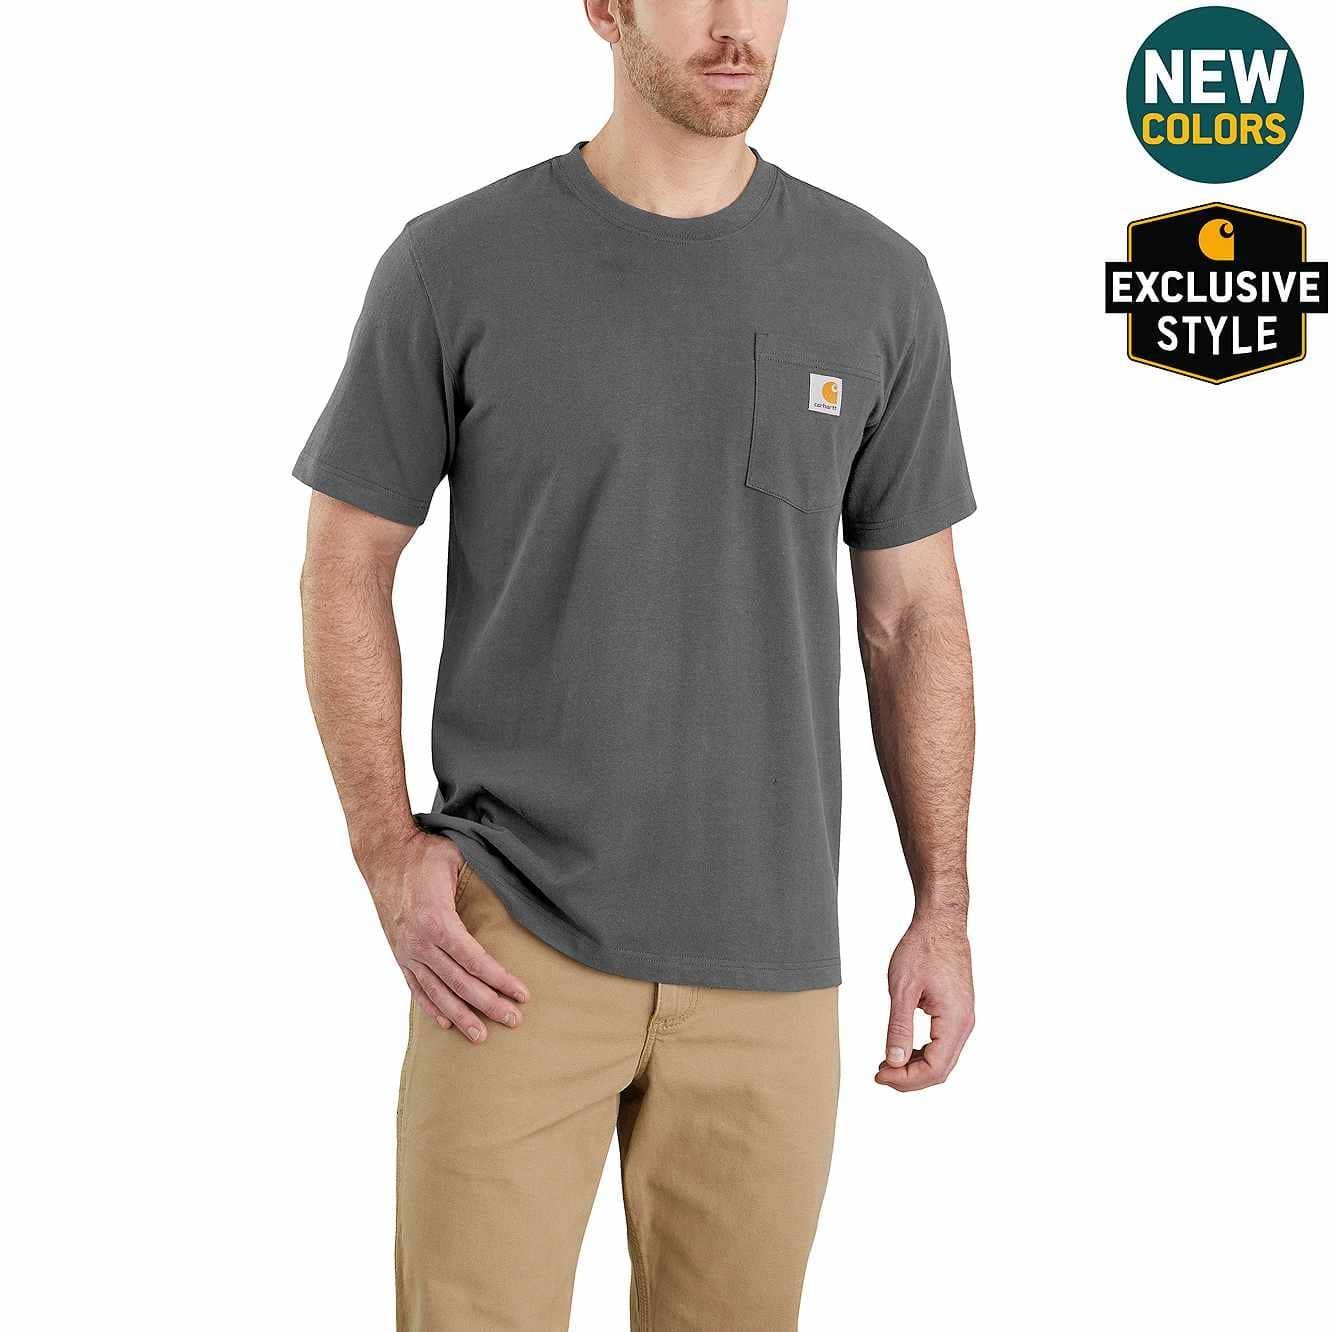 exceptional range of styles and colors wide selection of colours and designs latest selection Workwear Pocket T-Shirt - Relaxed Fit